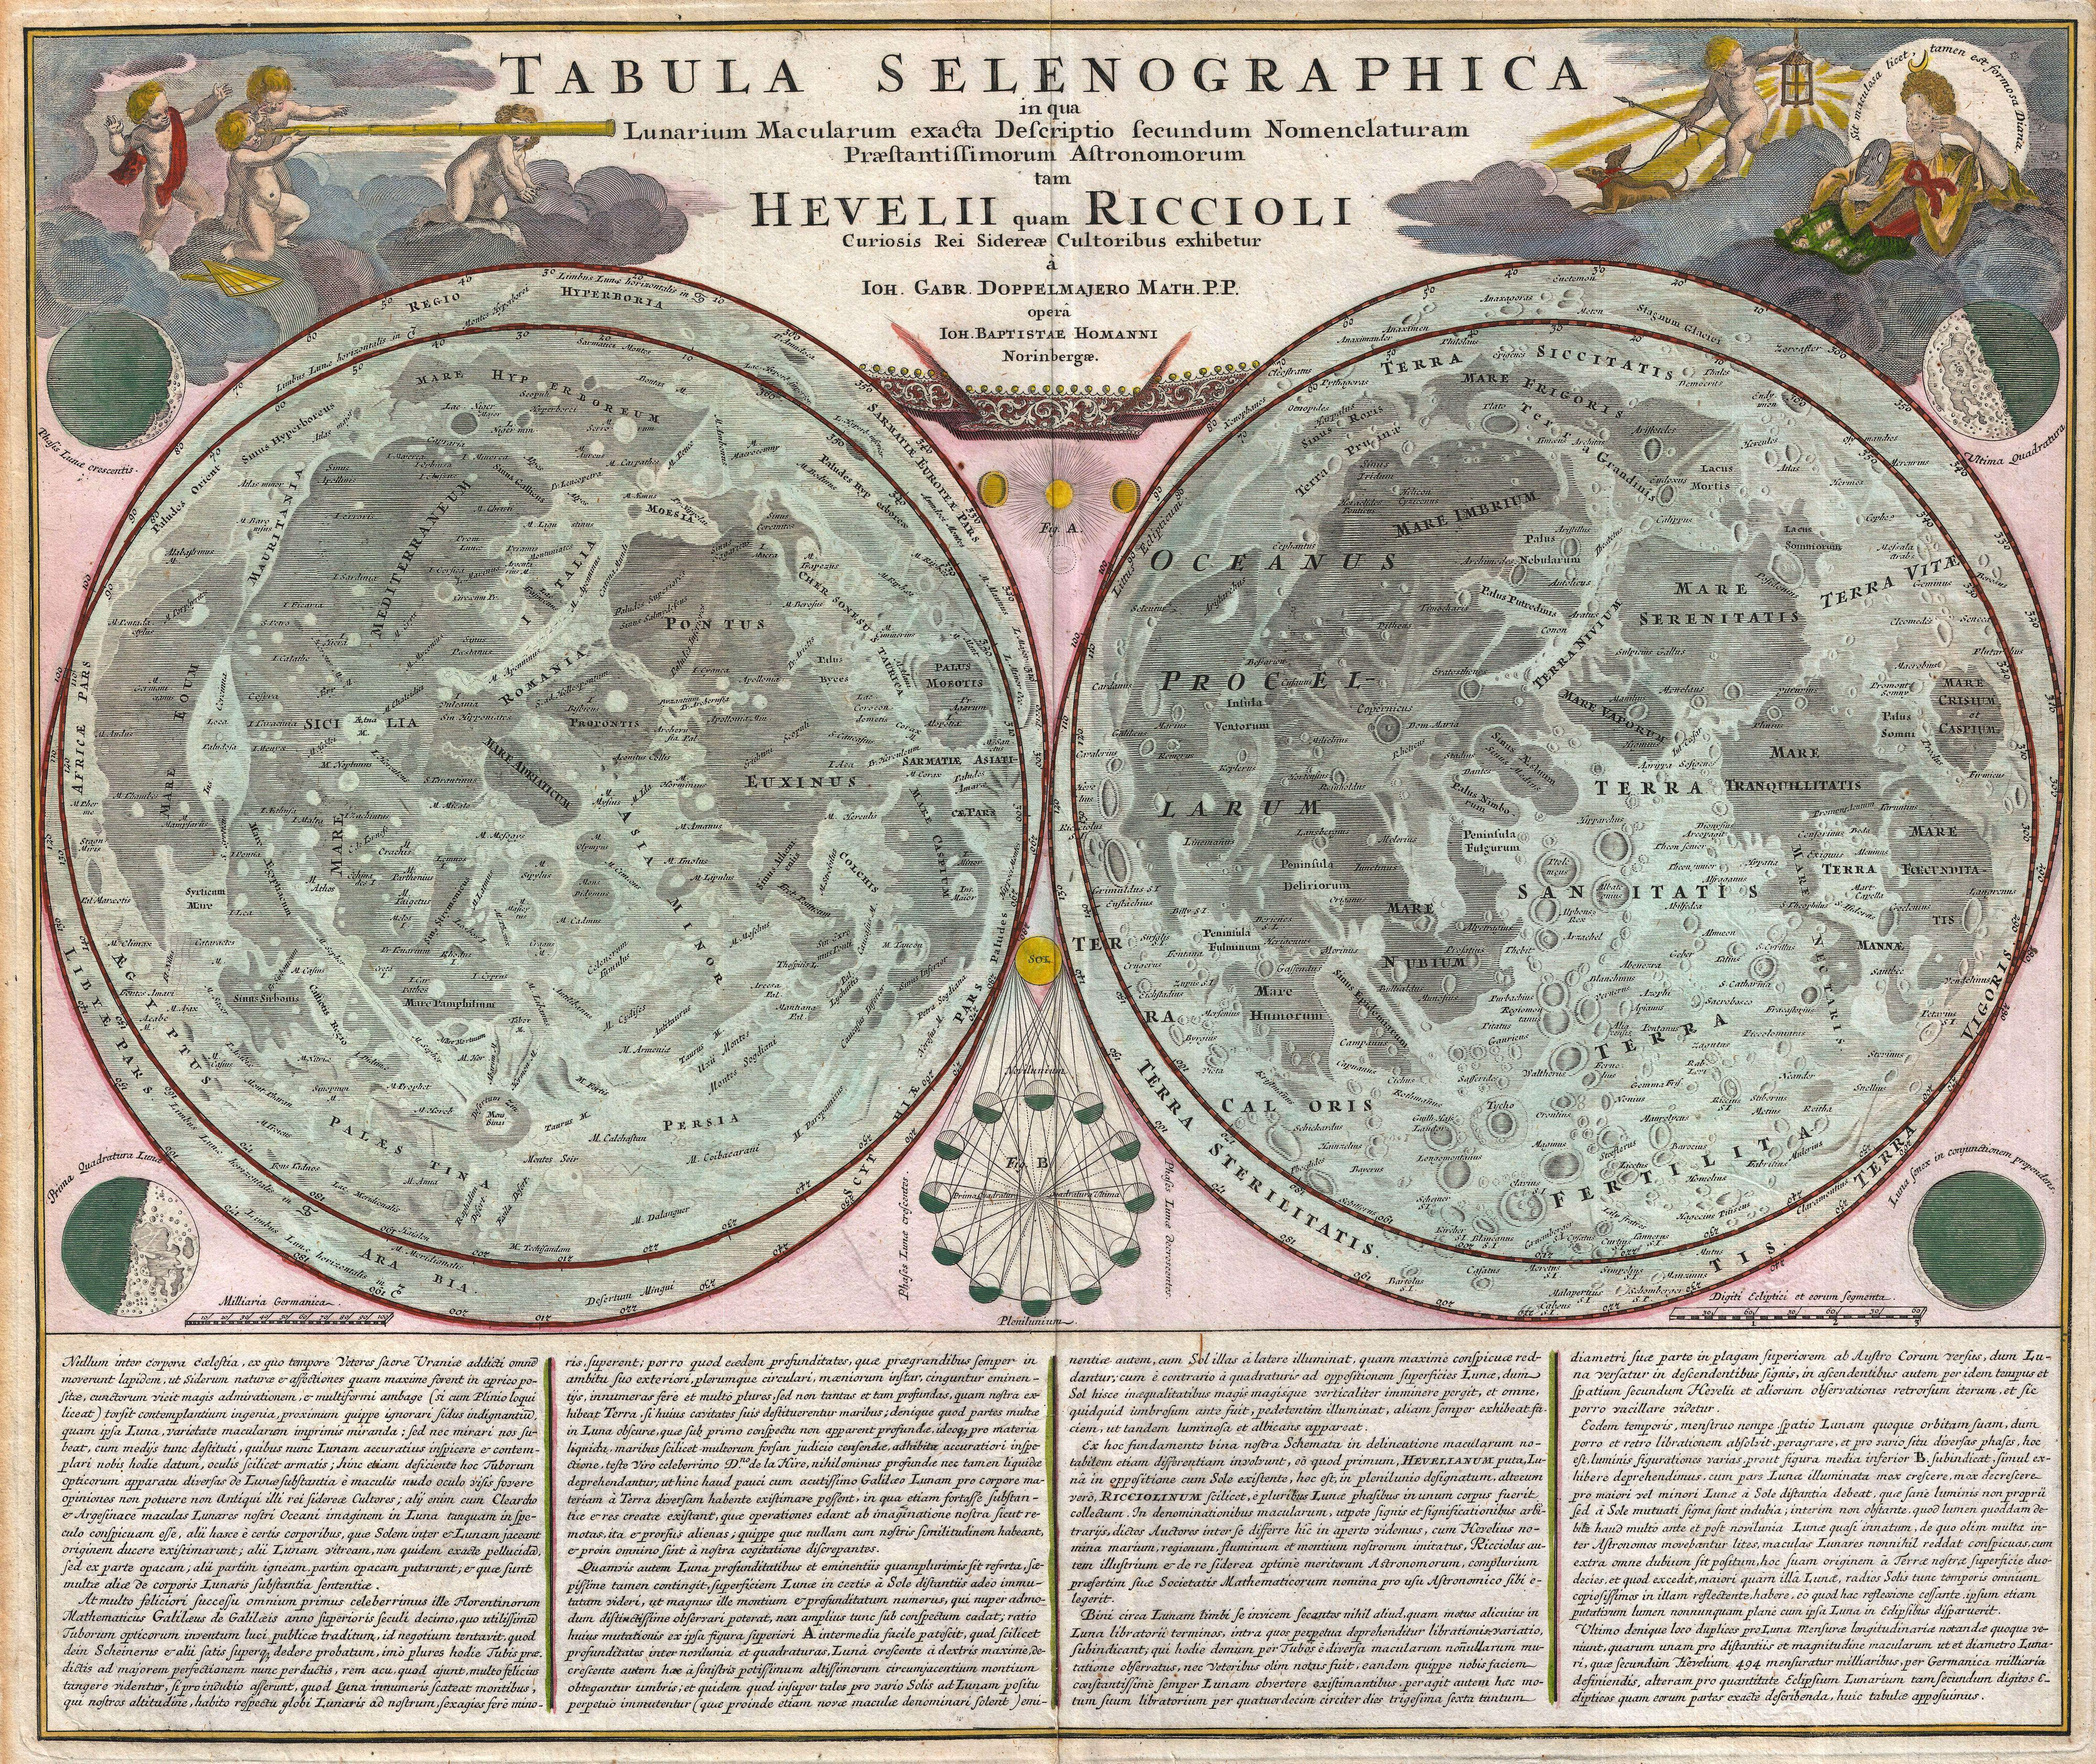 Moon Chart: 1707 Homann and Doppelmayr Map of the Moon - Geographicus ,Chart